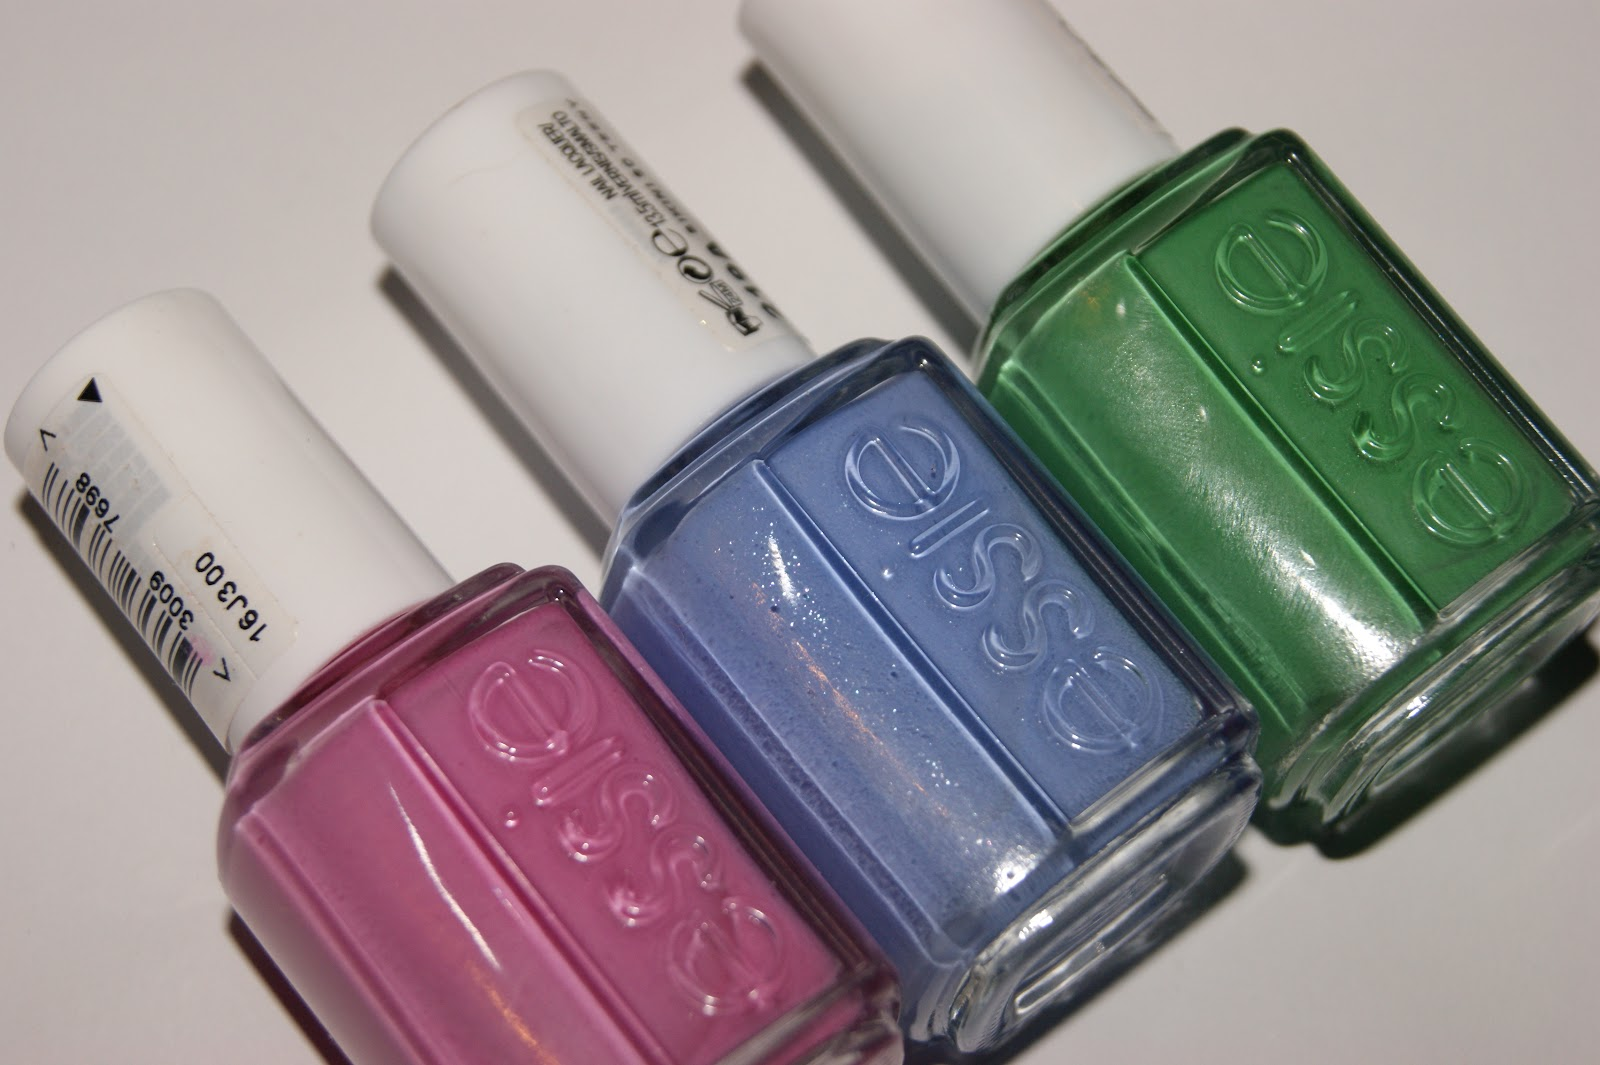 Essie Bikini So Teeny Summer 2012 Collection - Review | The Sunday Girl